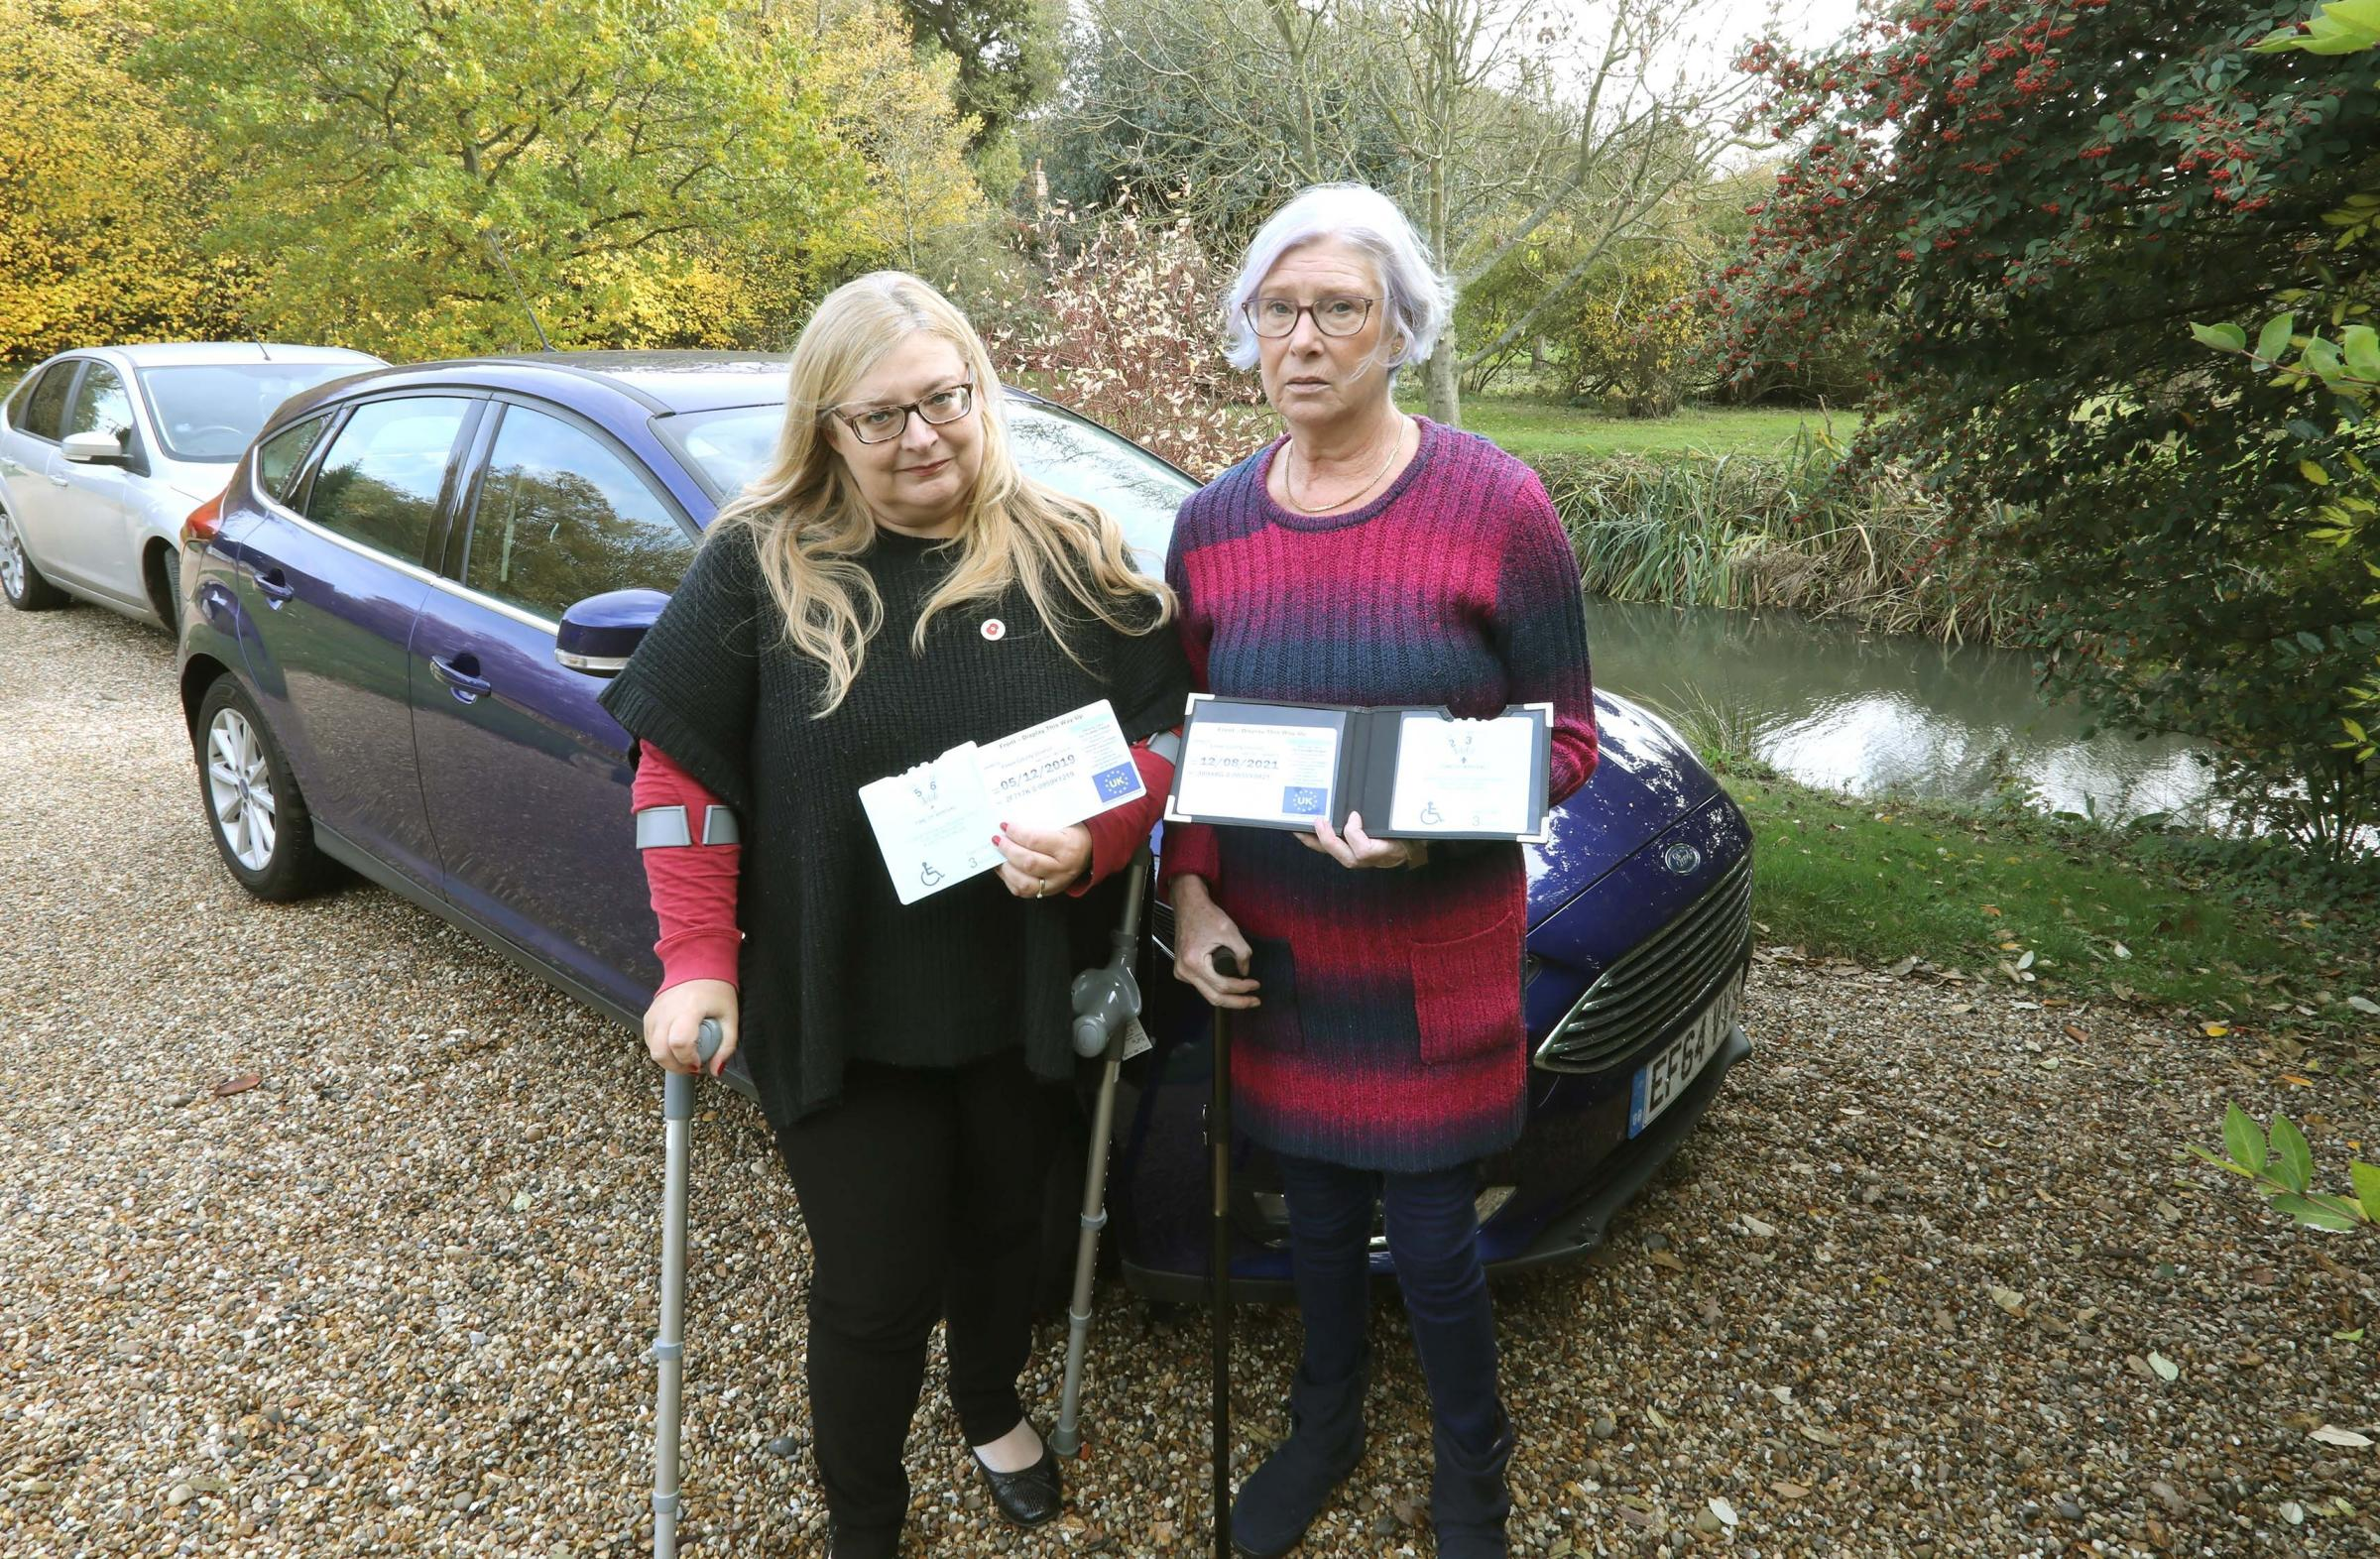 Angry - (from left) disabled drivers Celia Crossley and Annemarie O'Callaghan, unhappy with the lack of disabled parking in Colchester